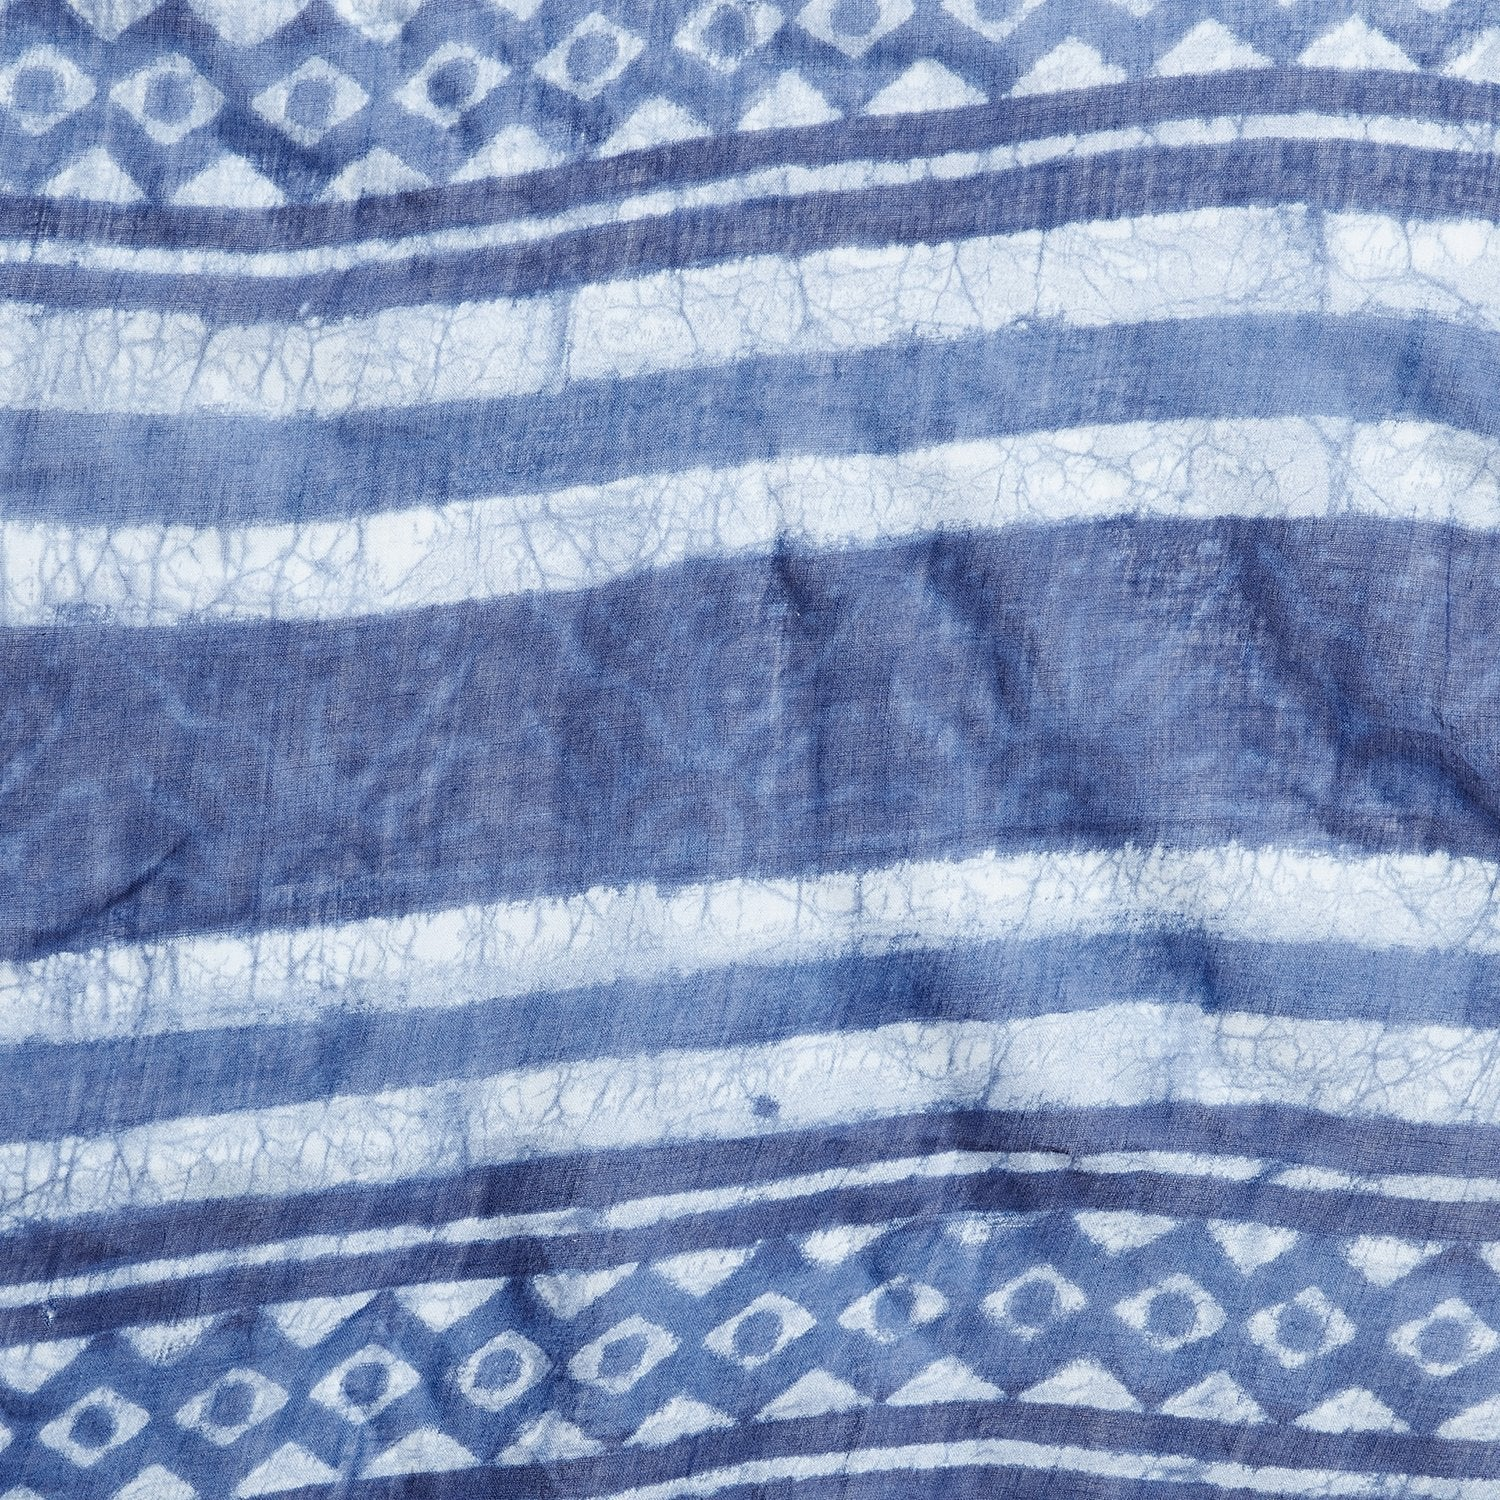 Indigo Dabu Hand Block Print Handcrafted Cotton Saree-Saree-Kalakari India-BAPASA0053-Cotton, Dabu, Geographical Indication, Hand Blocks, Hand Crafted, Heritage Prints, Indigo, Natural Dyes, Sarees, Sustainable Fabrics-[Linen,Ethnic,wear,Fashionista,Handloom,Handicraft,Indigo,blockprint,block,print,Cotton,Chanderi,Blue, latest,classy,party,bollywood,trendy,summer,style,traditional,formal,elegant,unique,style,hand,block,print, dabu,booti,gift,present,glamorous,affordable,collectible,Sari,Saree,pr